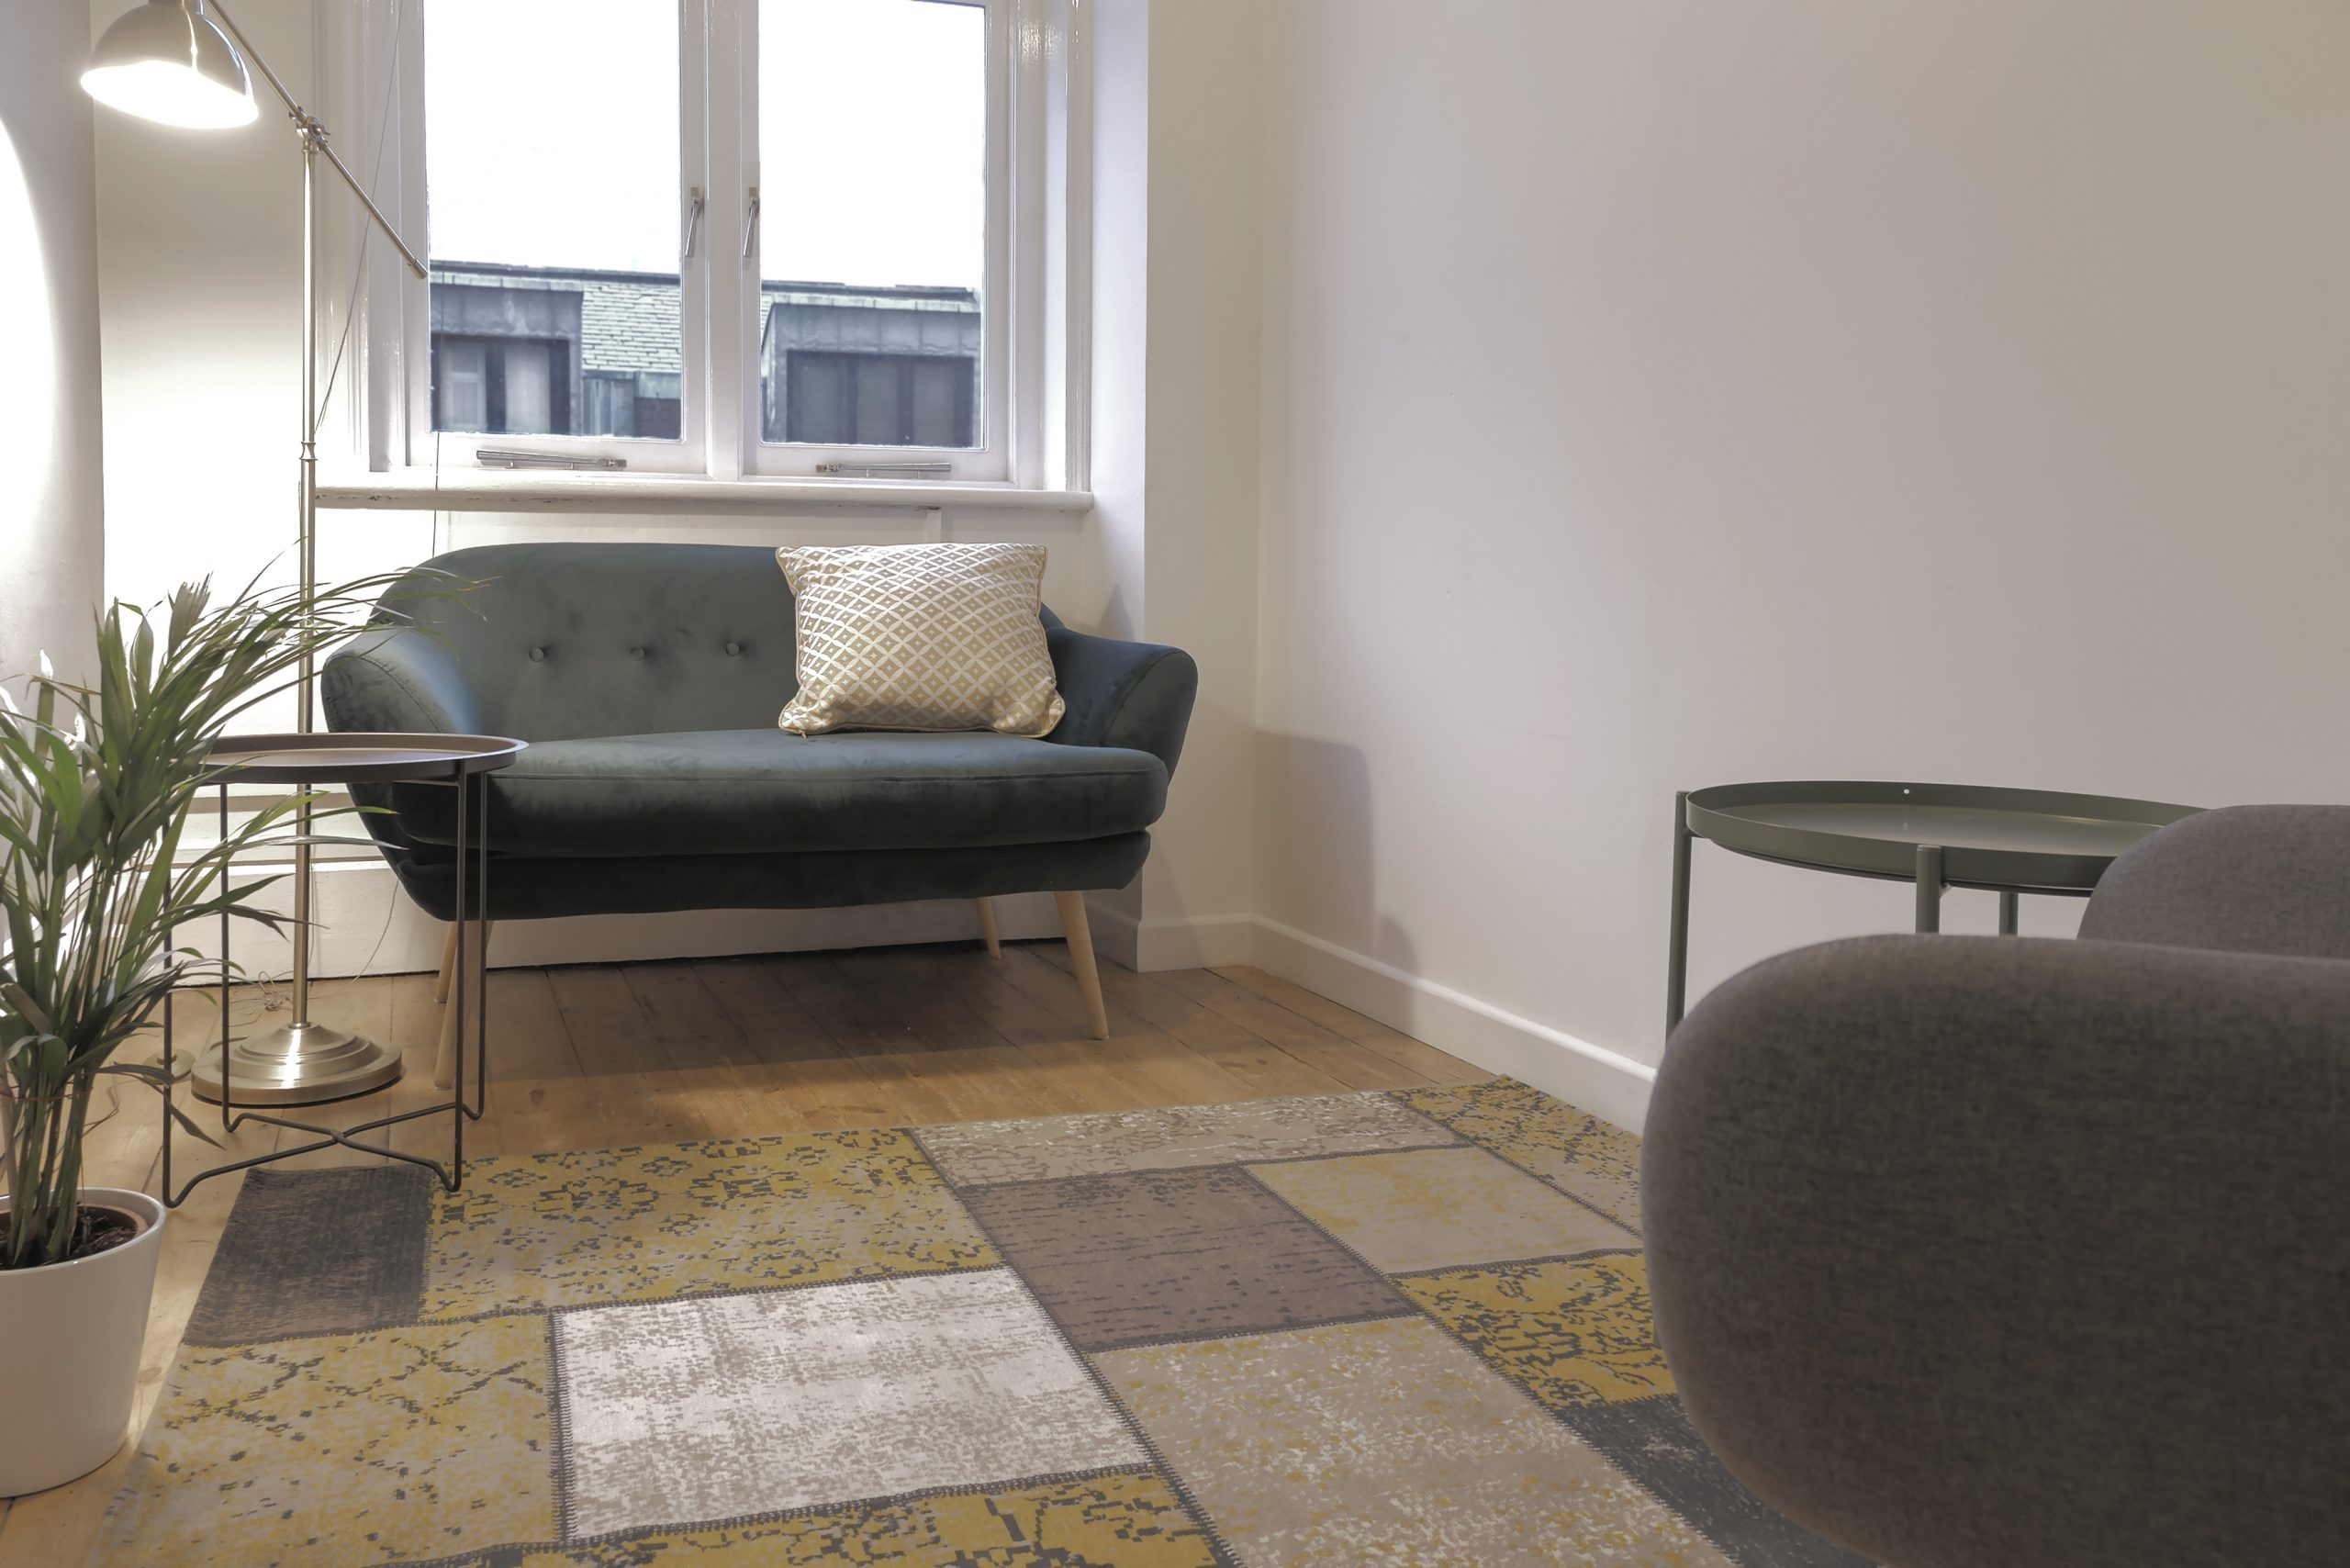 Counselling and Clinical Psychology jobs, Central London Therapy rooms